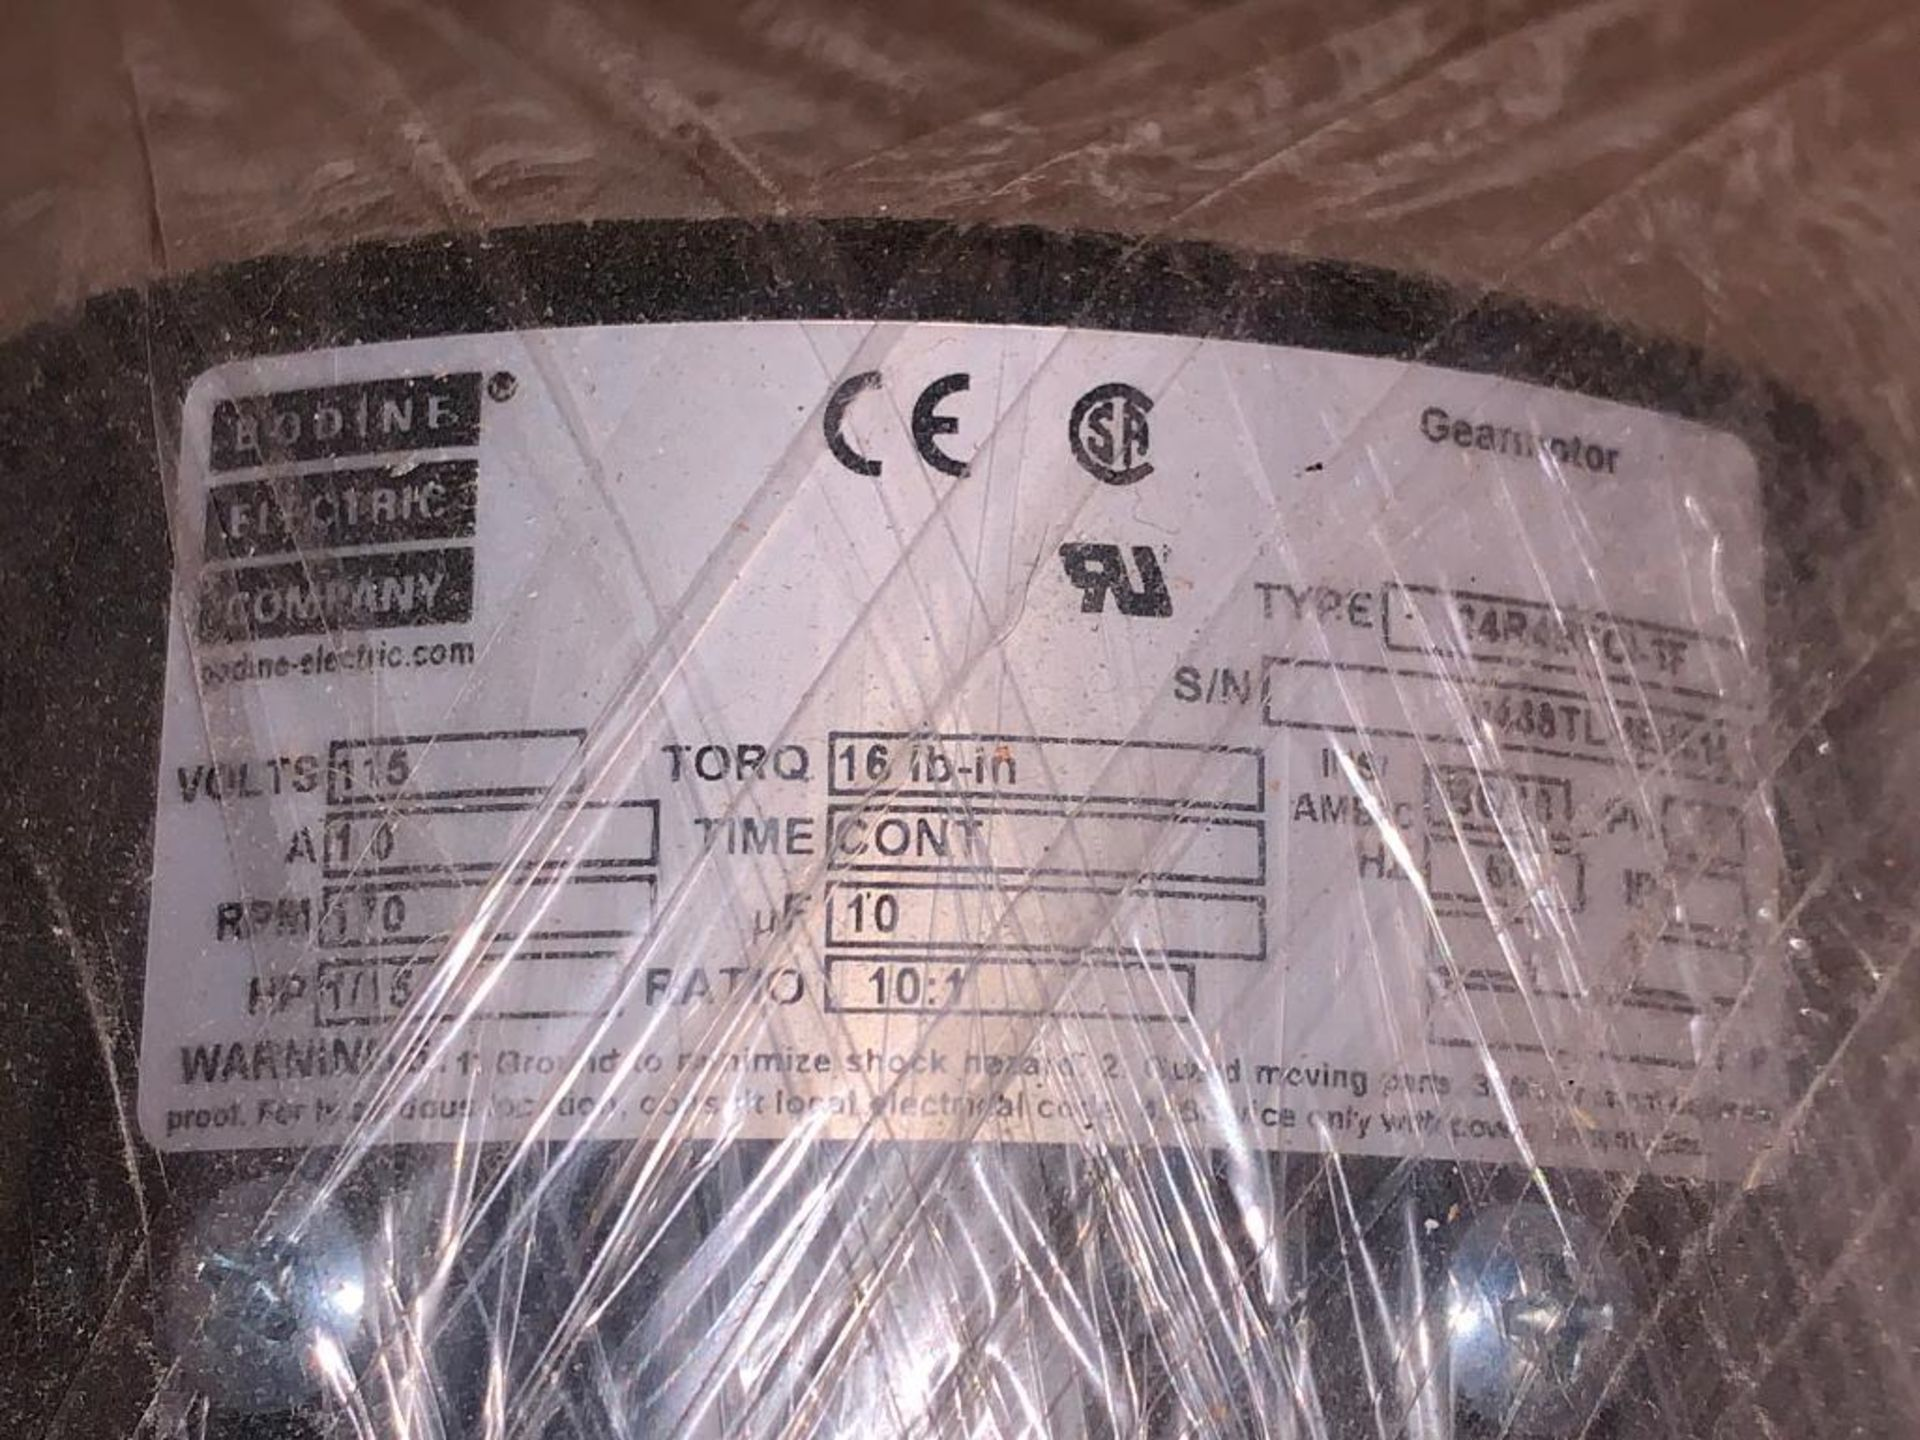 pallet of used motors and drives - Image 13 of 13